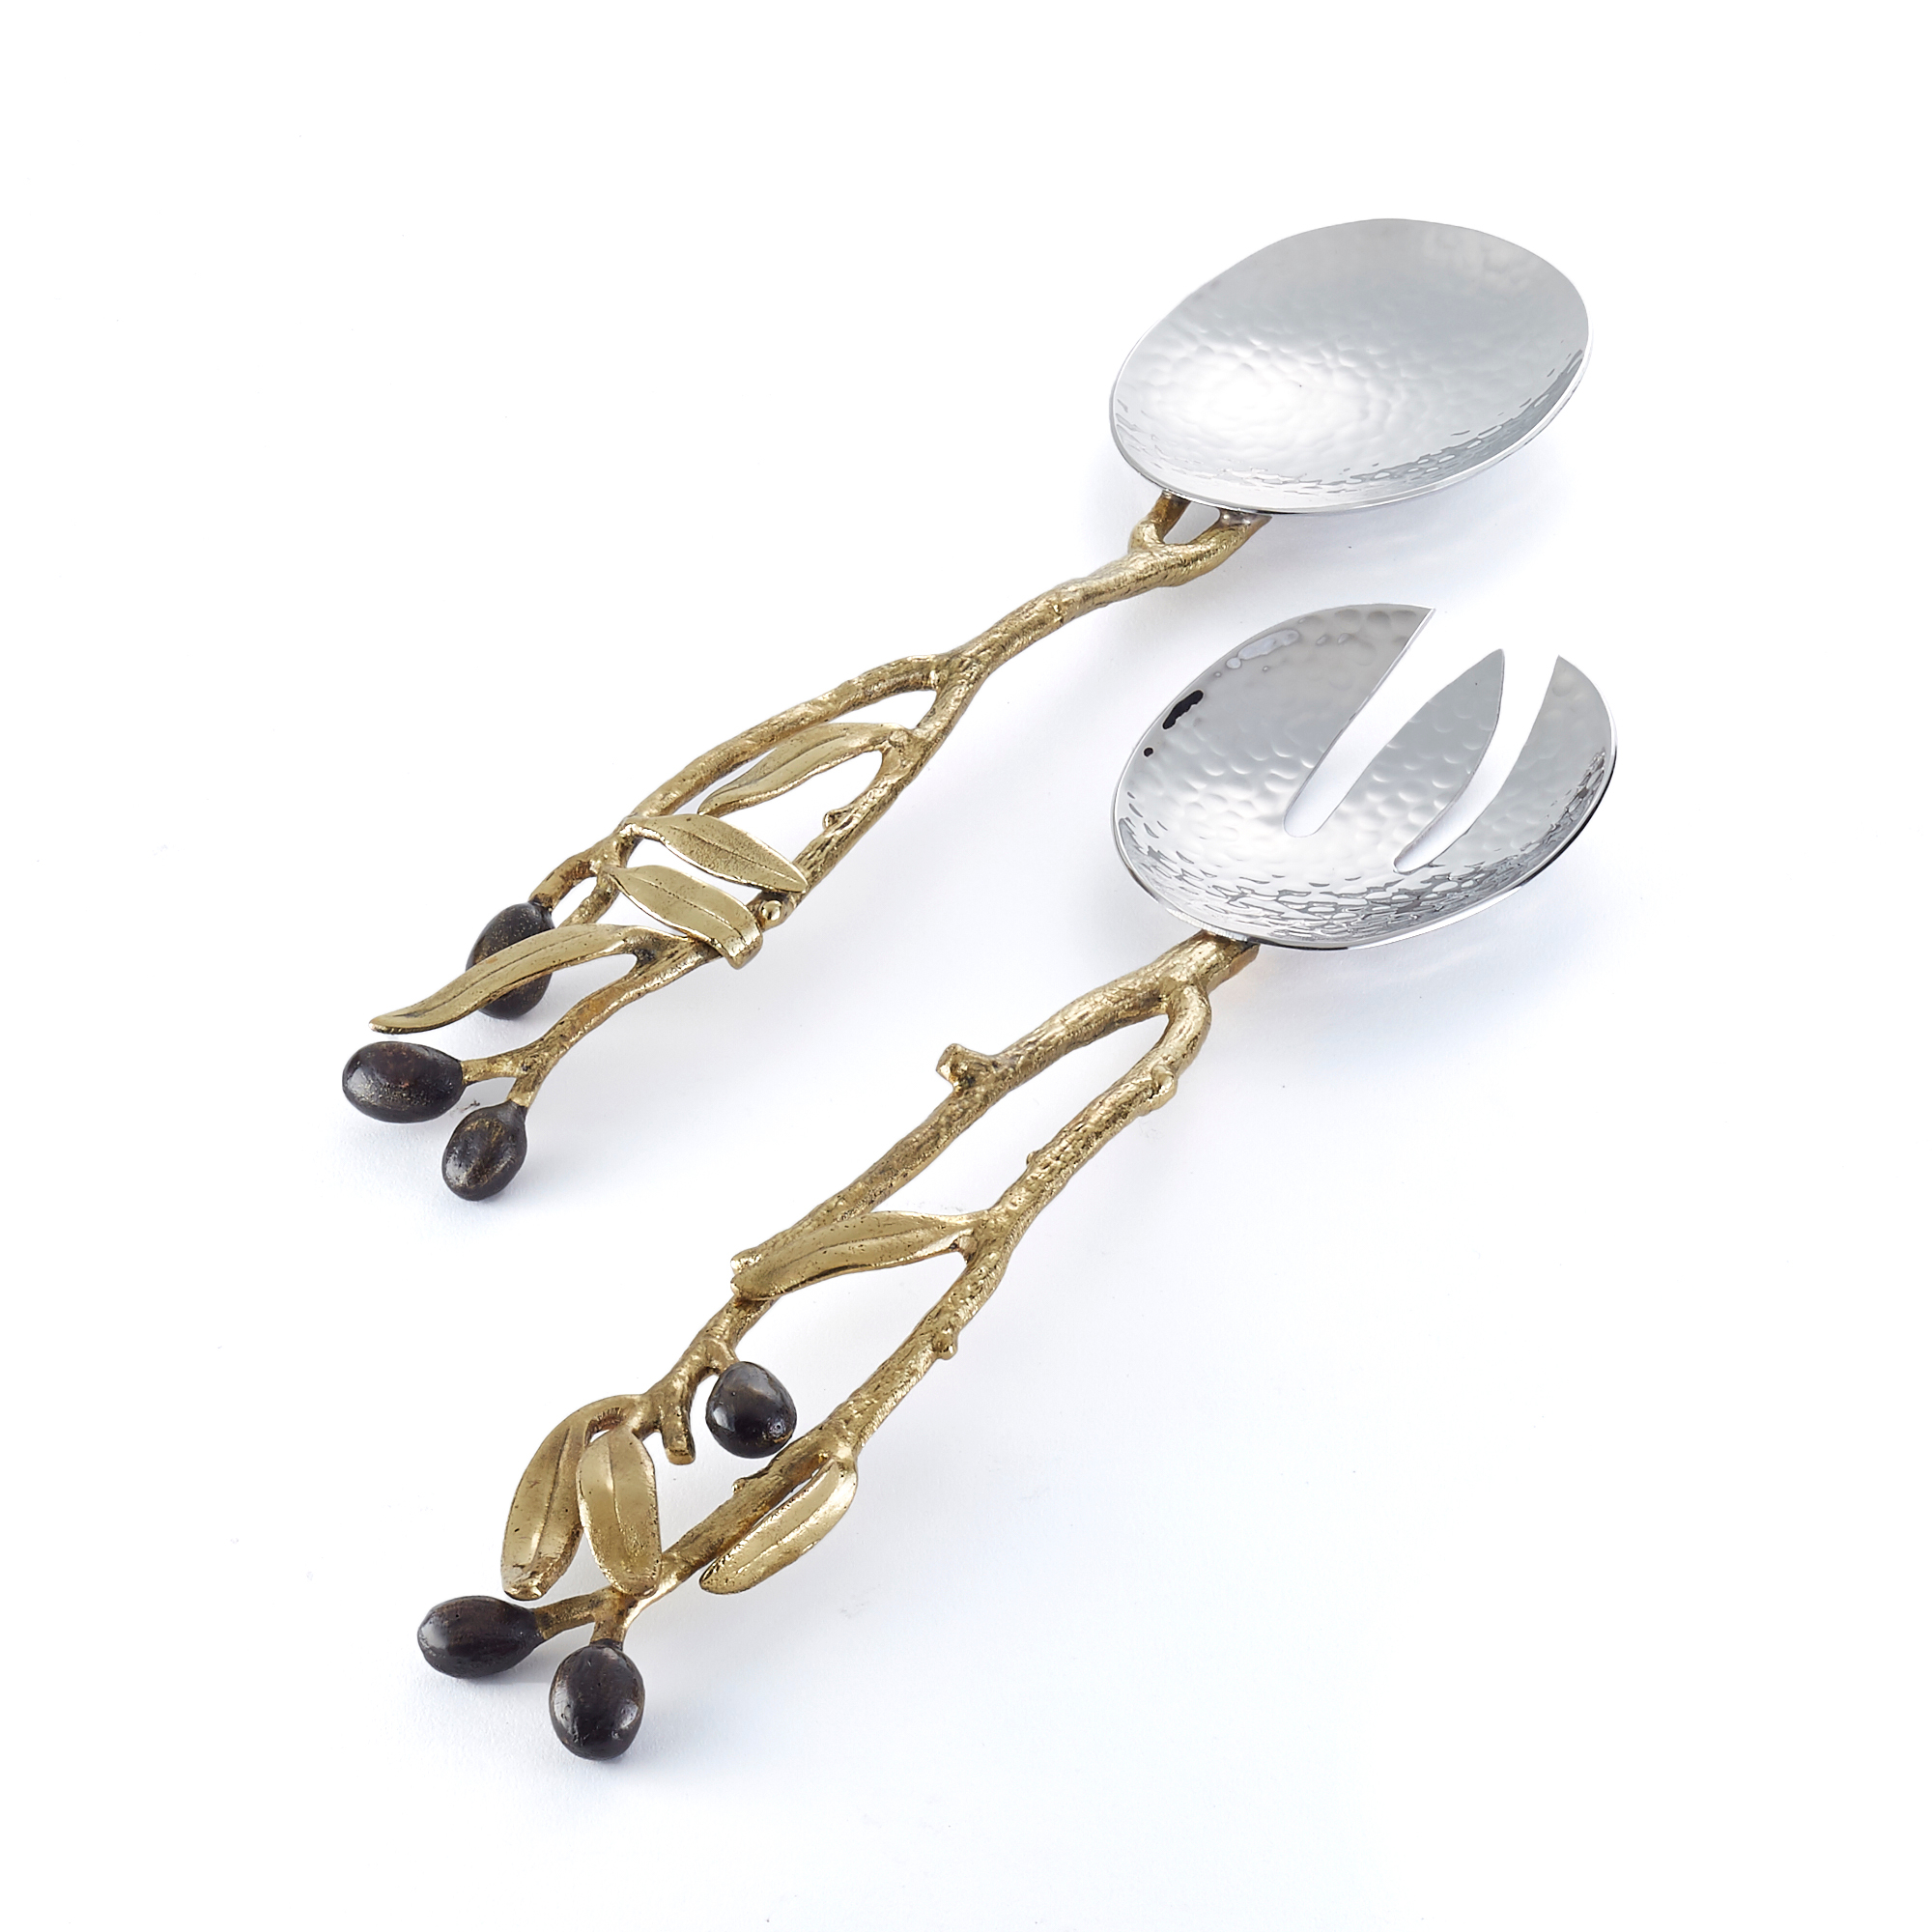 Michael Aram Olive Branch Gold Serveware, Set of 2